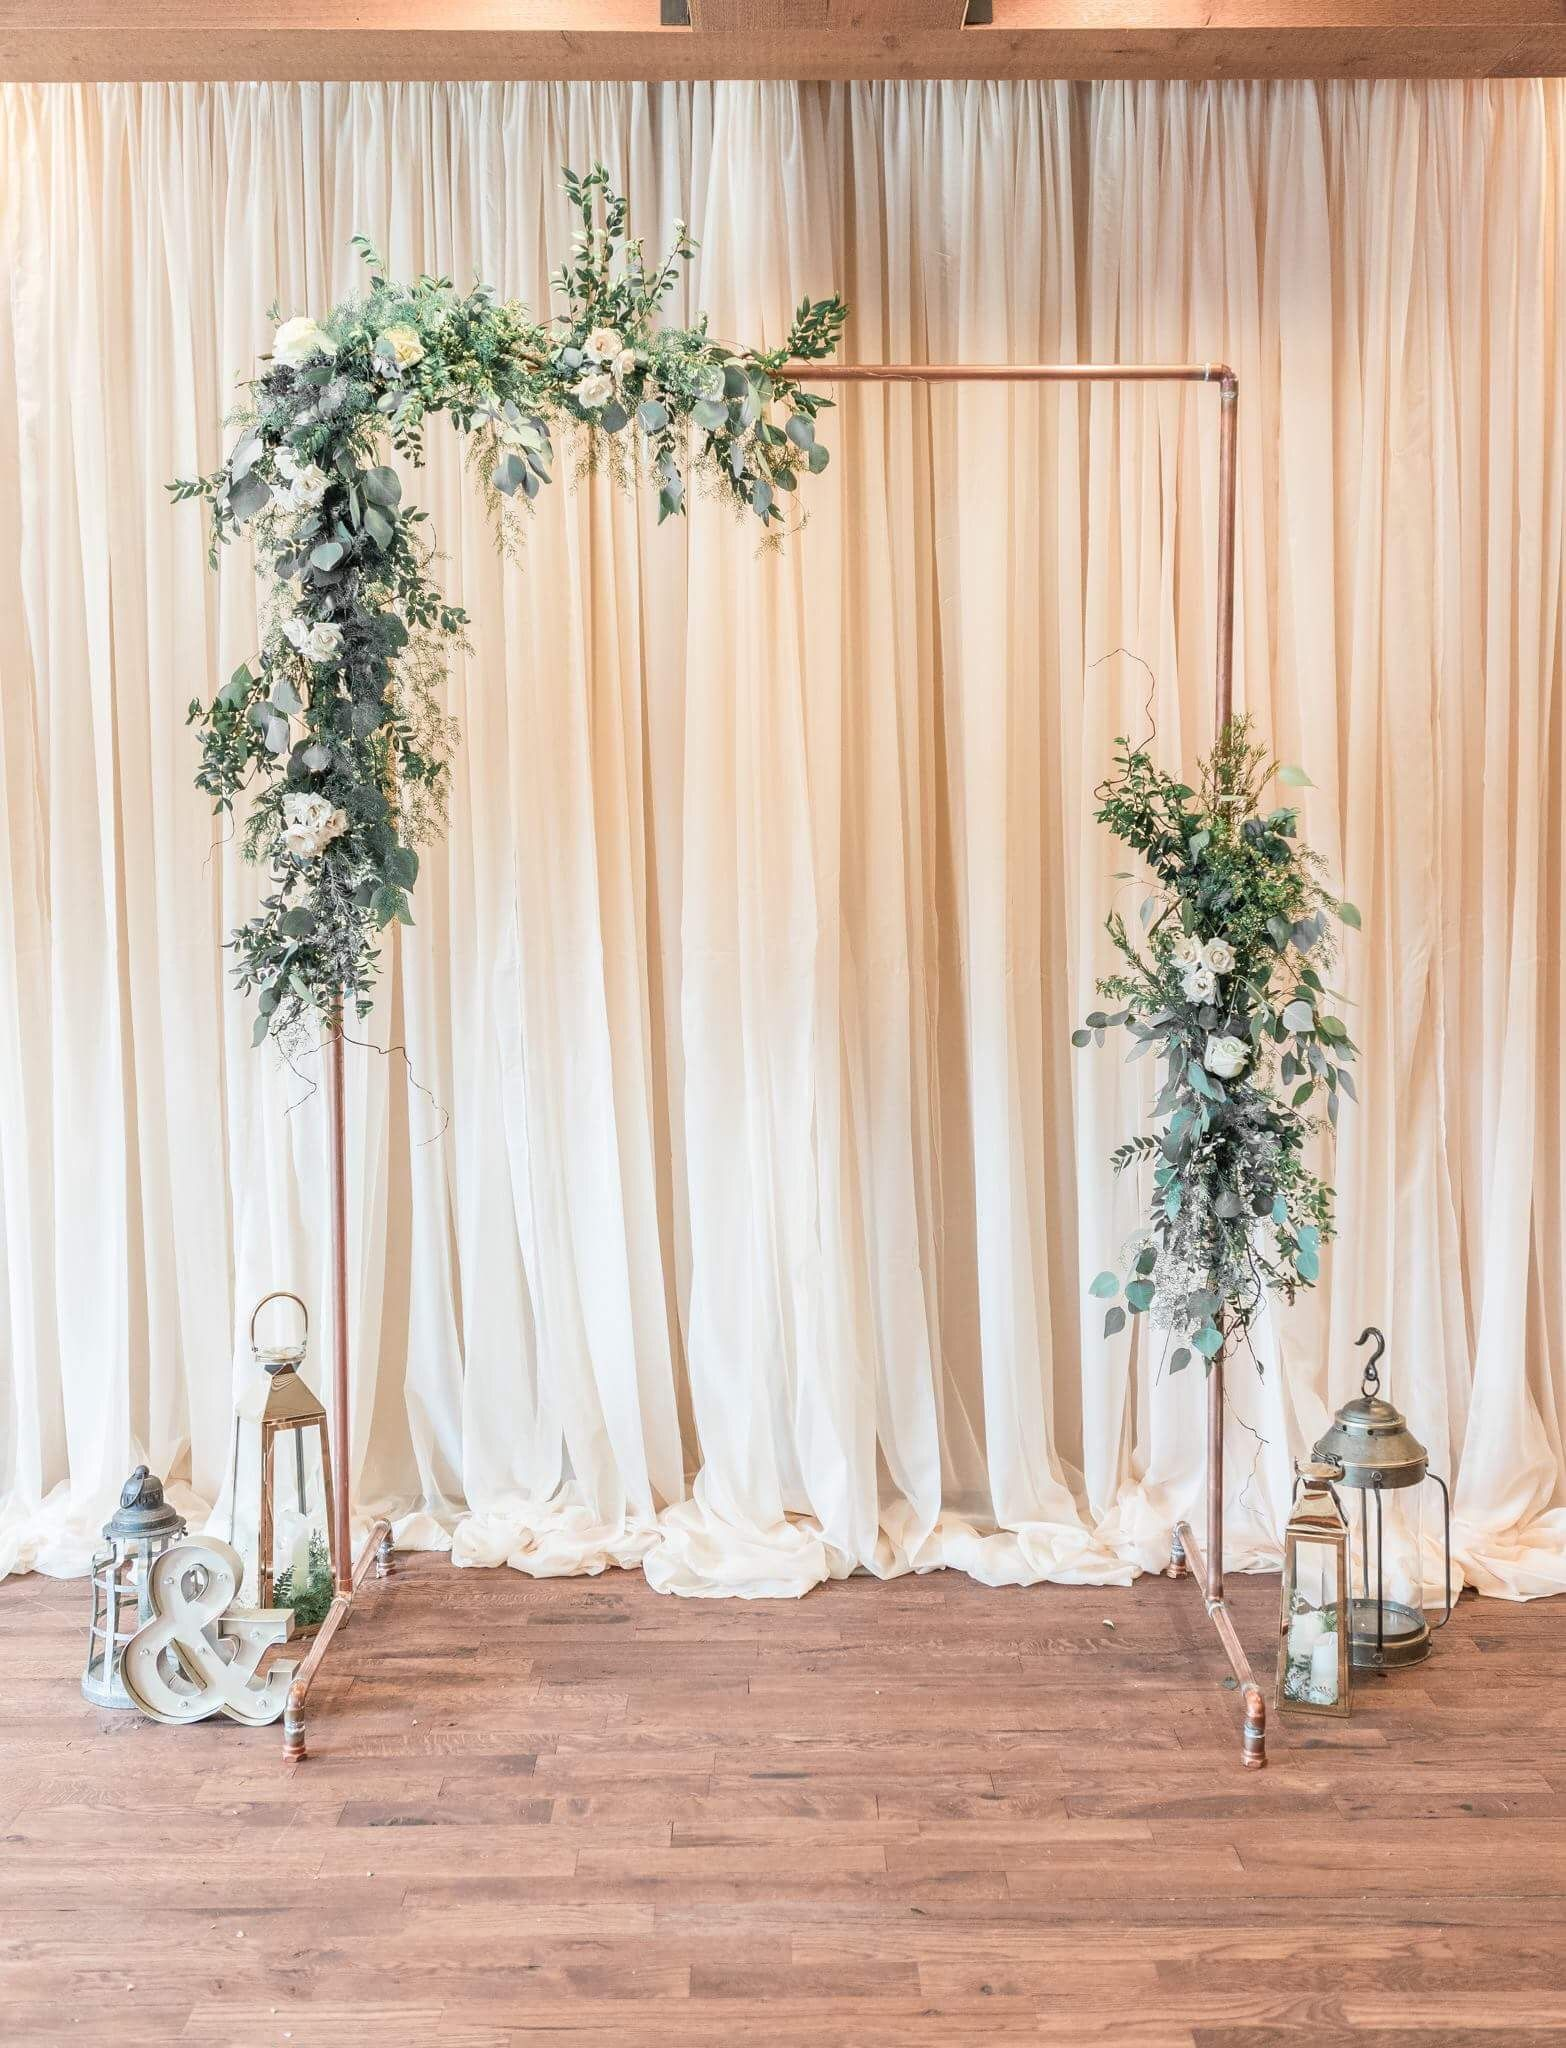 Minimalist wedding copper wedding arch arbor greenery